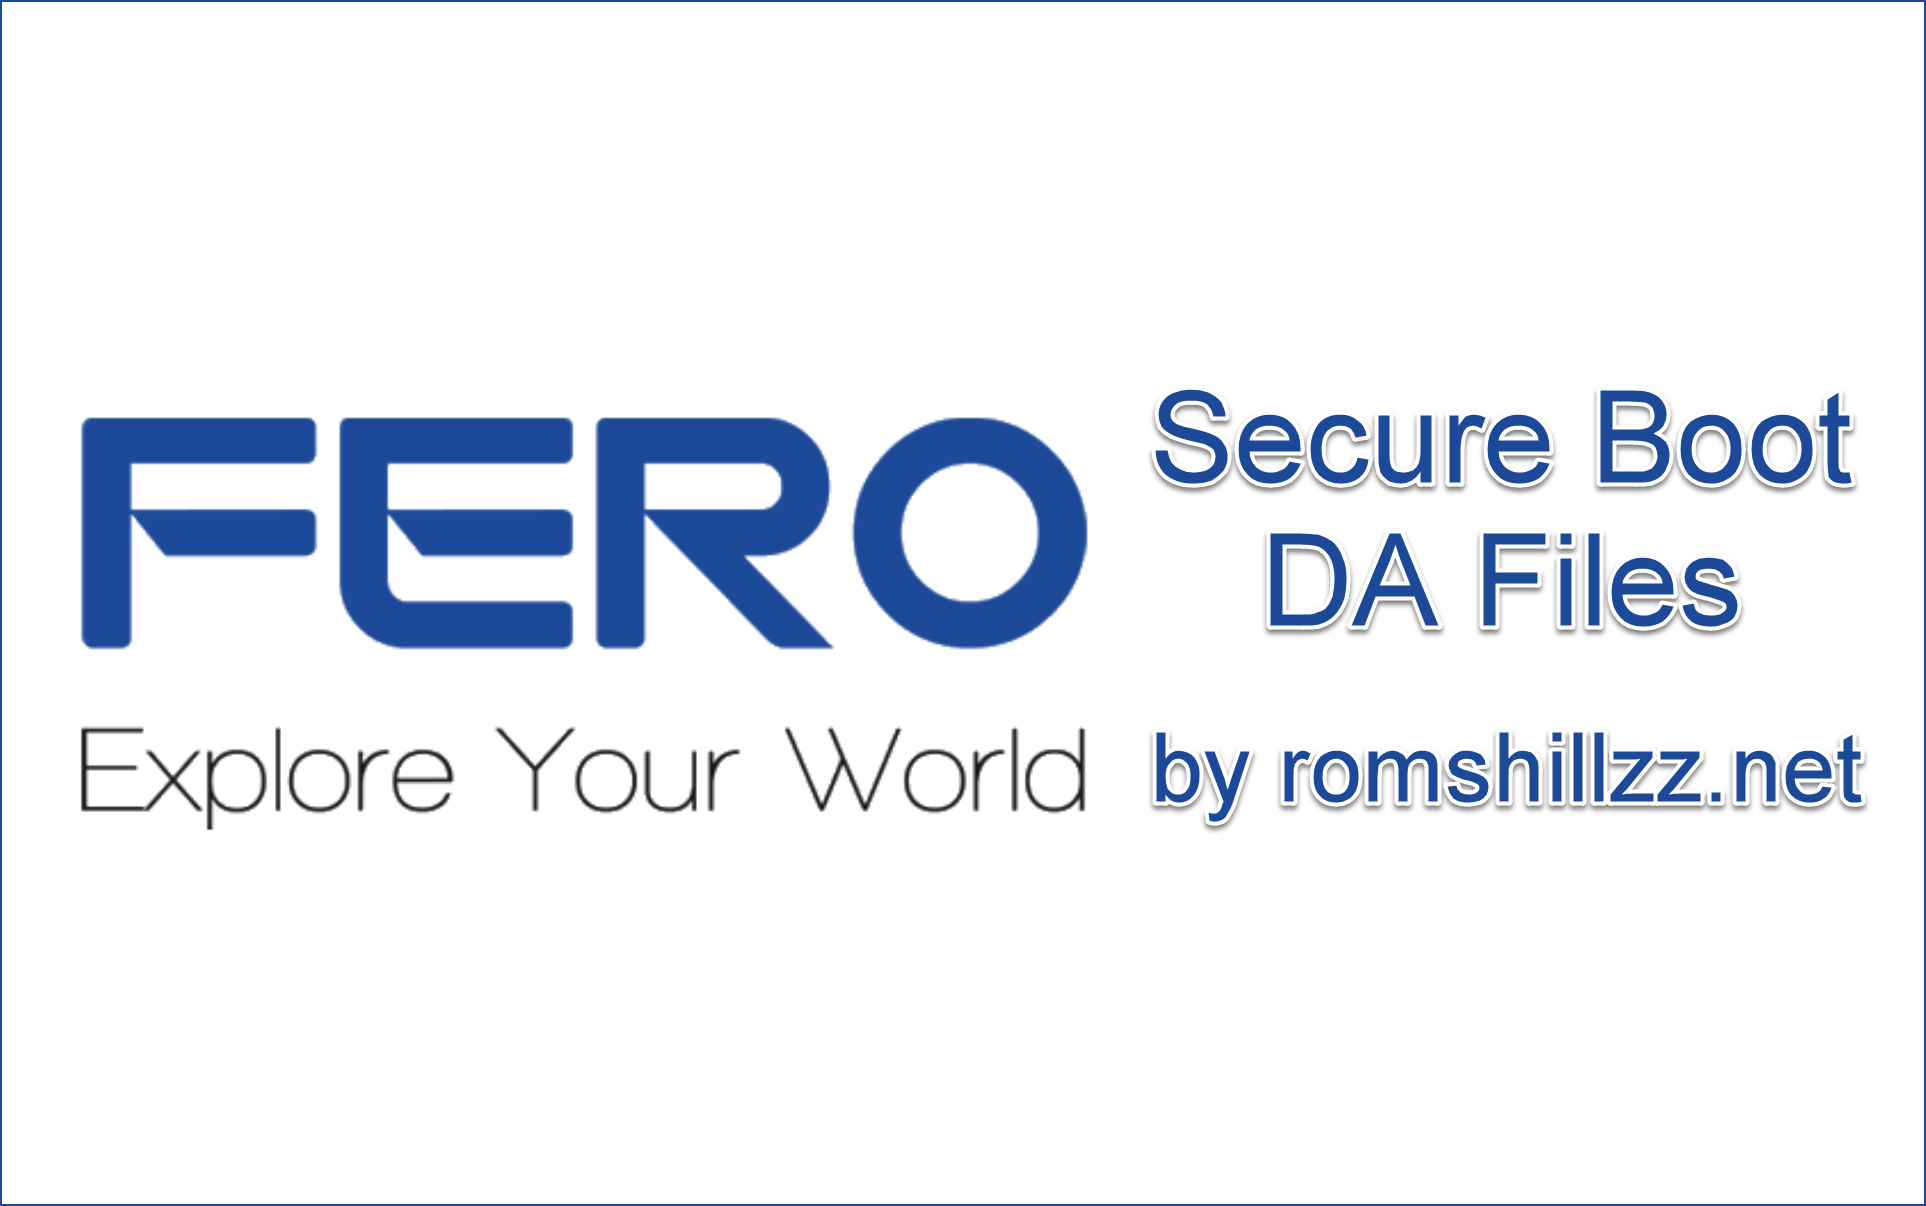 fero-secure-boot.png